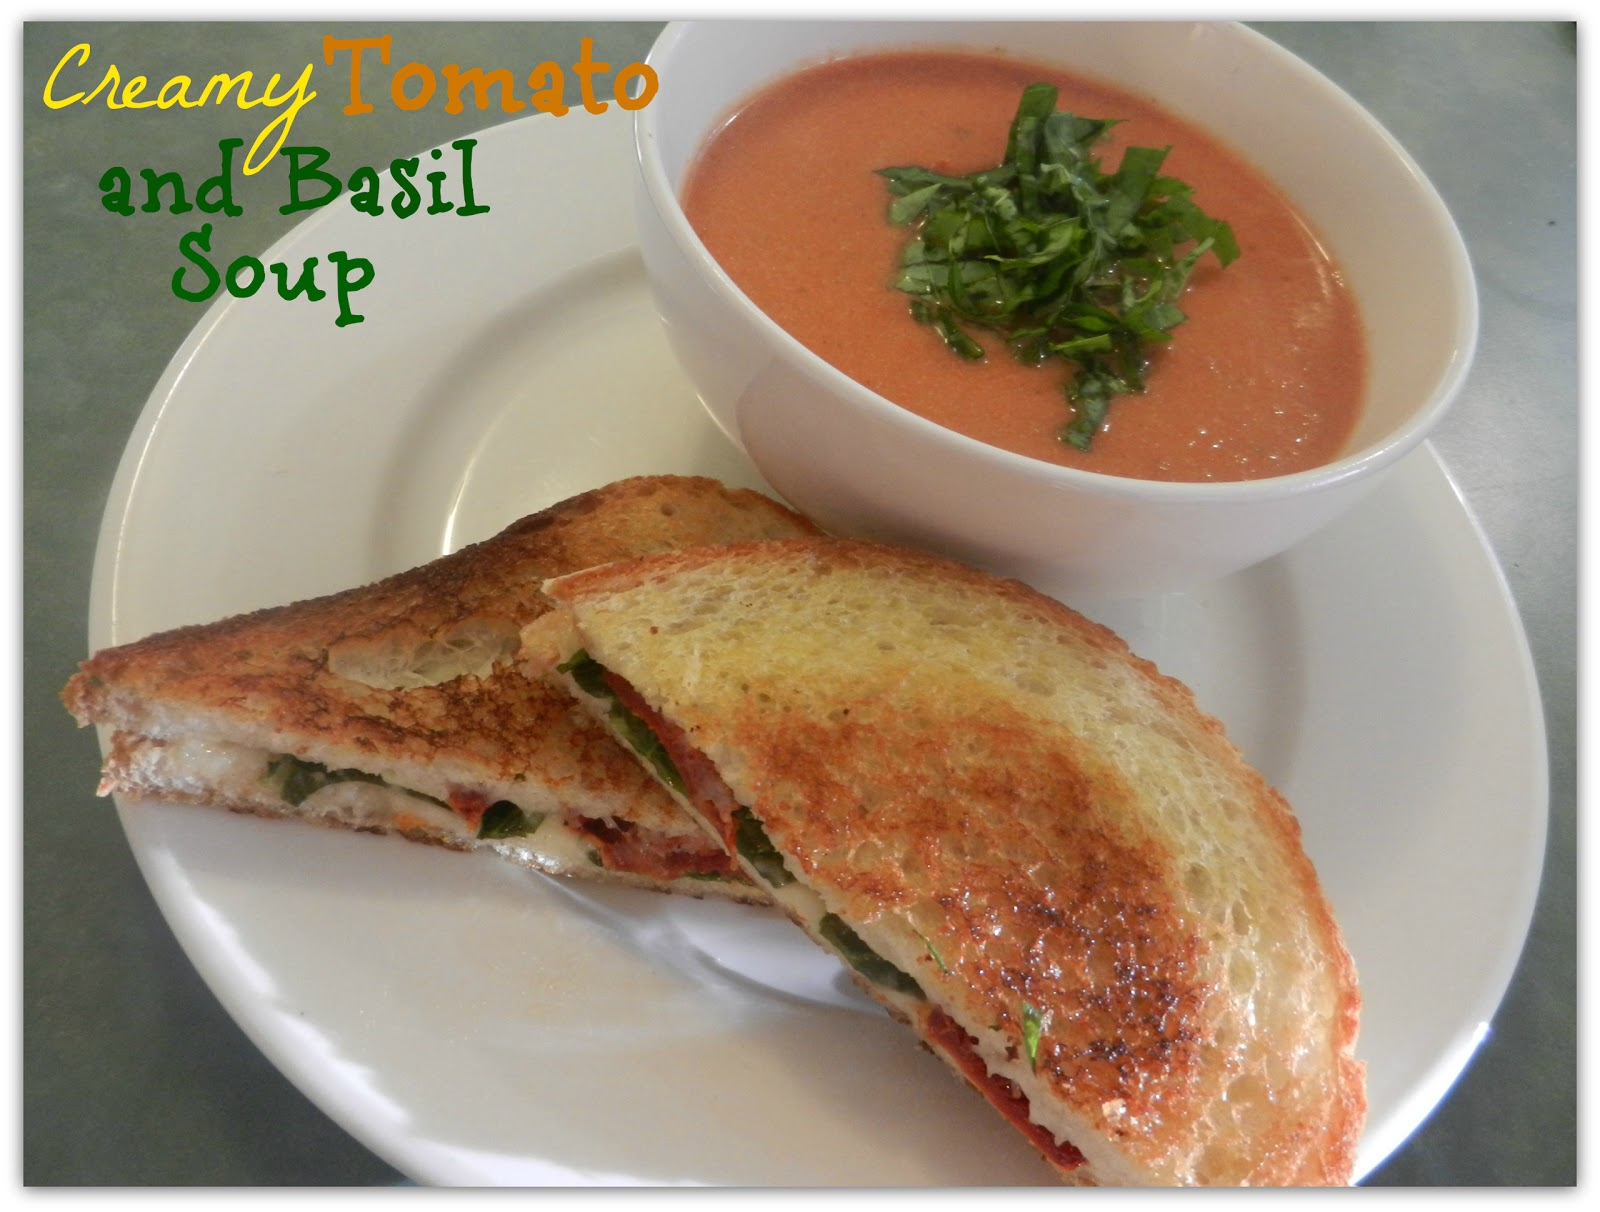 Busy Mom's Slow Cooker Adventures: Creamy Tomato Basil Soup